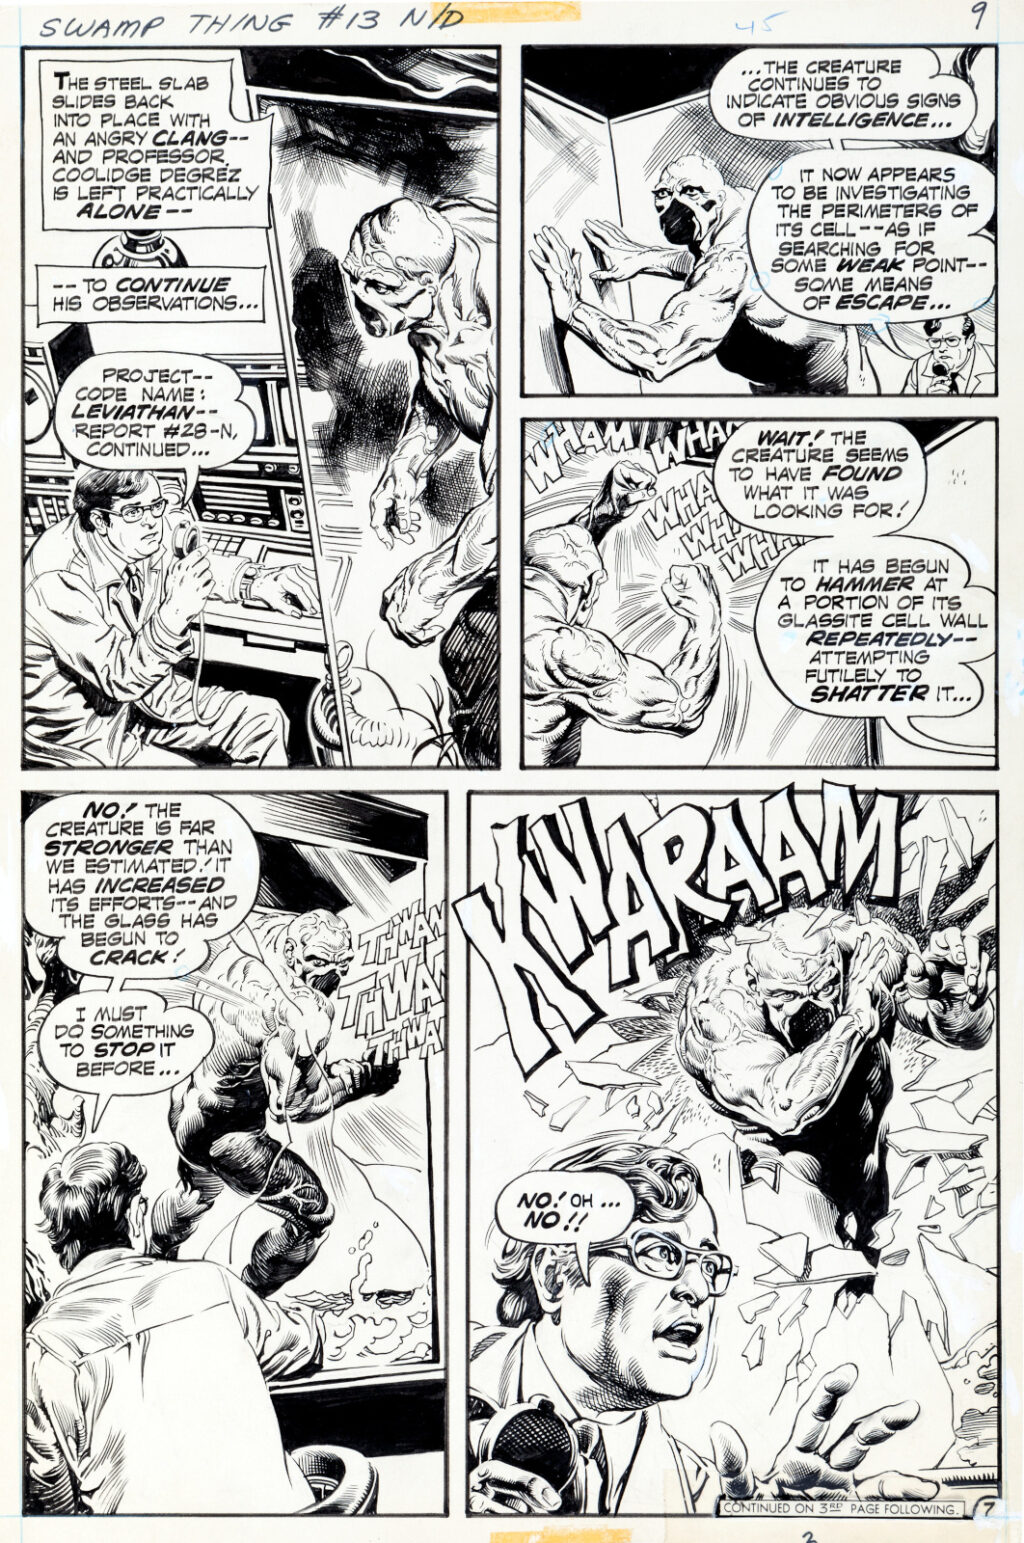 Swamp Thing issue 13 page 7 by Nestor Redondo